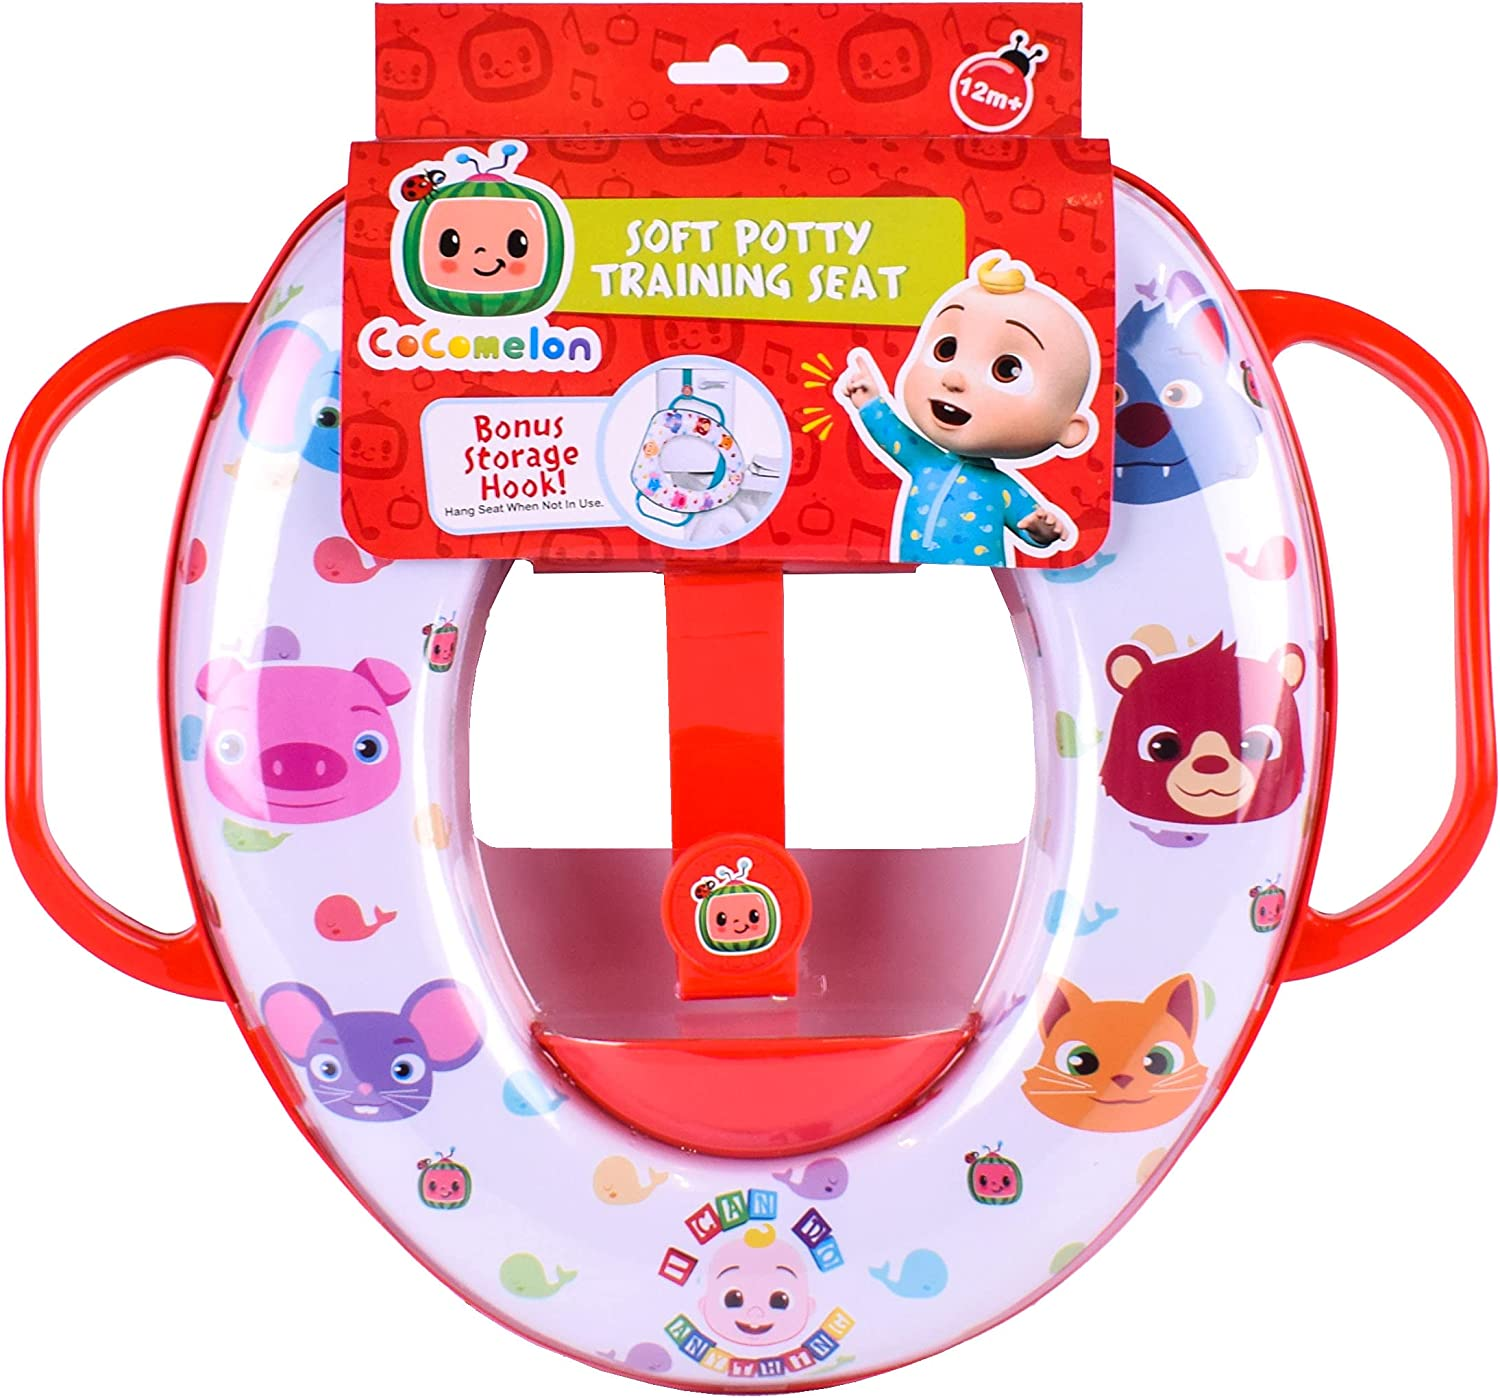 Sunny Days Entertainment Max 47% OFF CoComelon Soft Red Training Seat Potty Super intense SALE